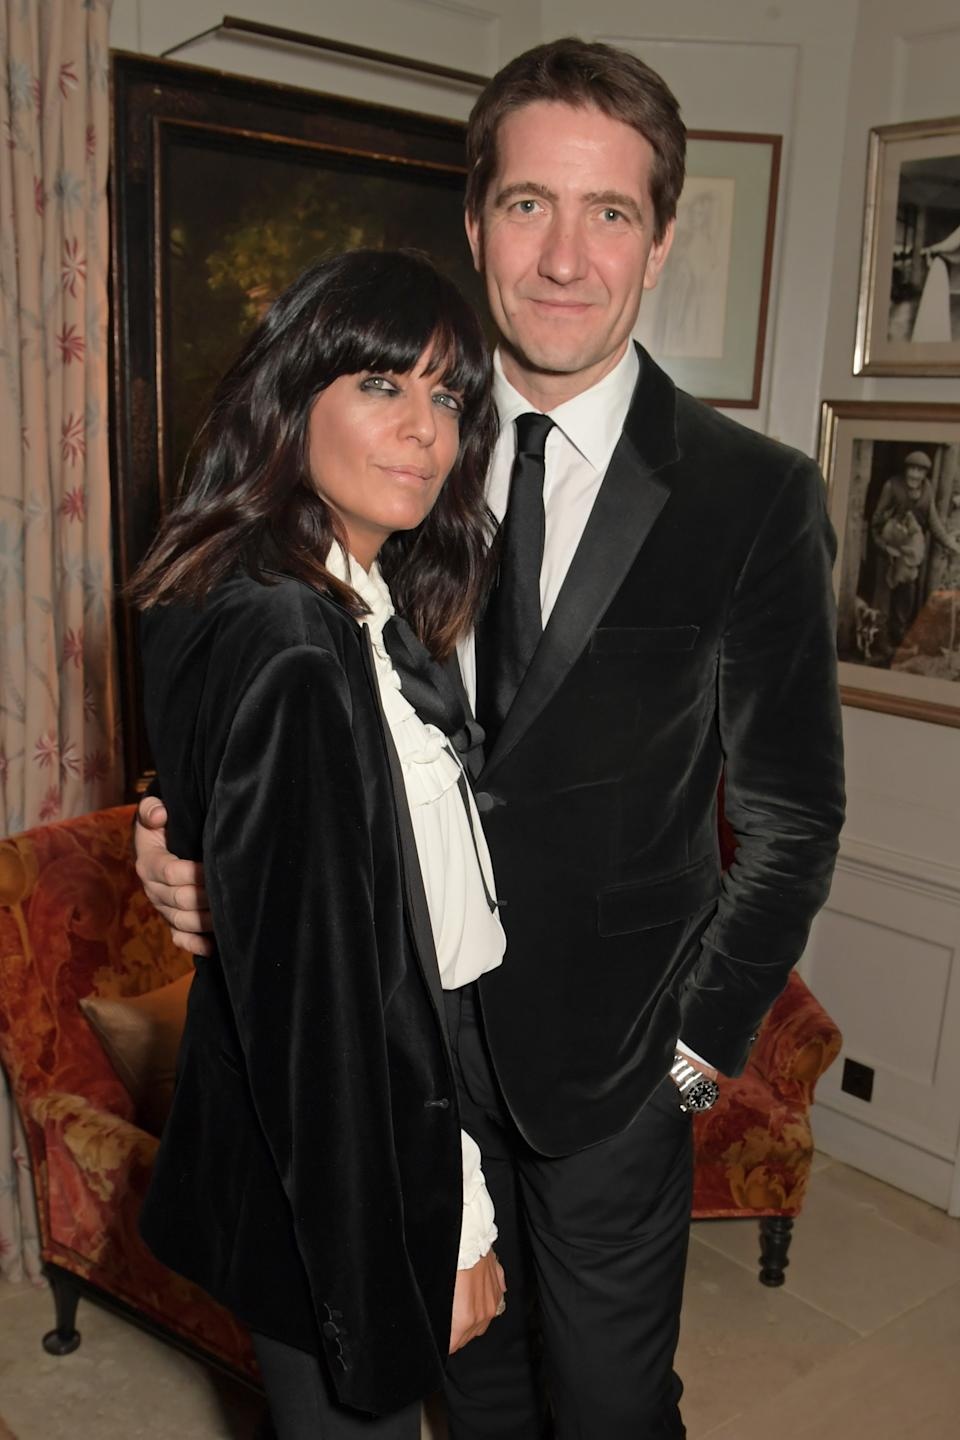 The presenter married film producer Kris Thykier in 2000. (Getty Images)